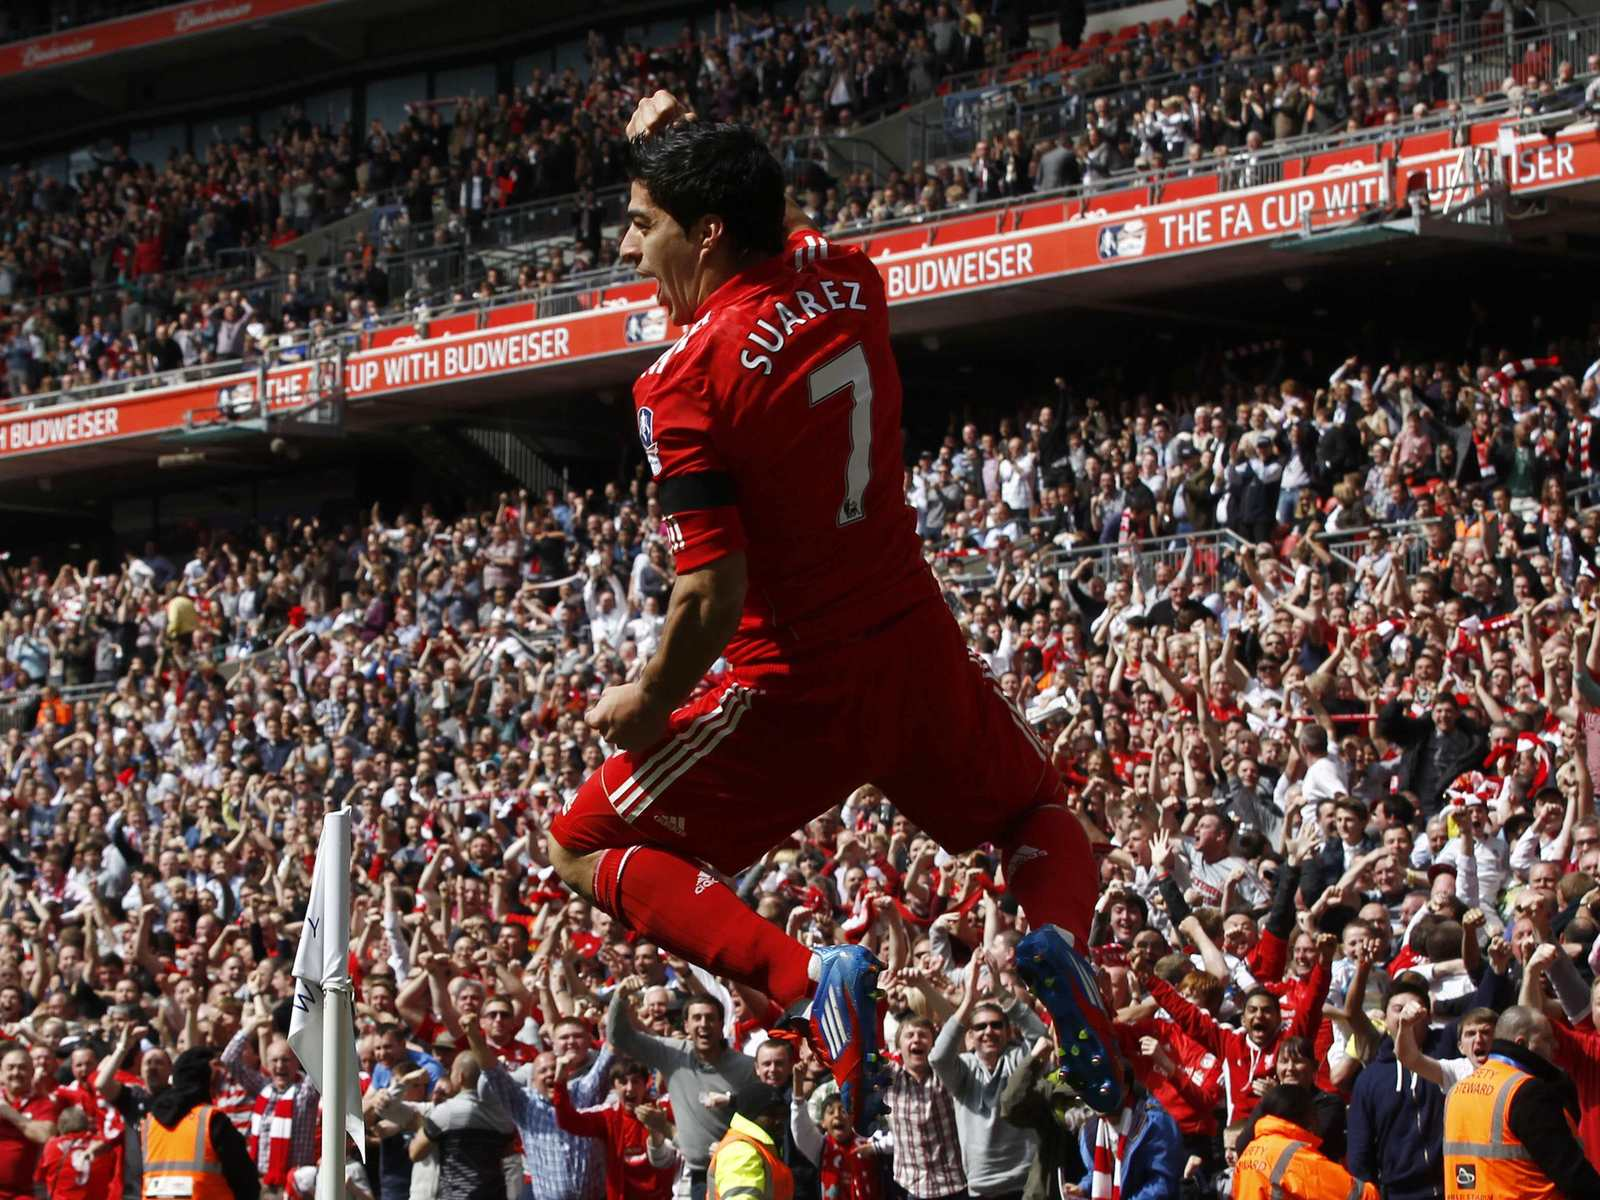 Desktop wallpaper suarez number 7 liverpool desktop wallpaper - Suarez liverpool wallpaper ...